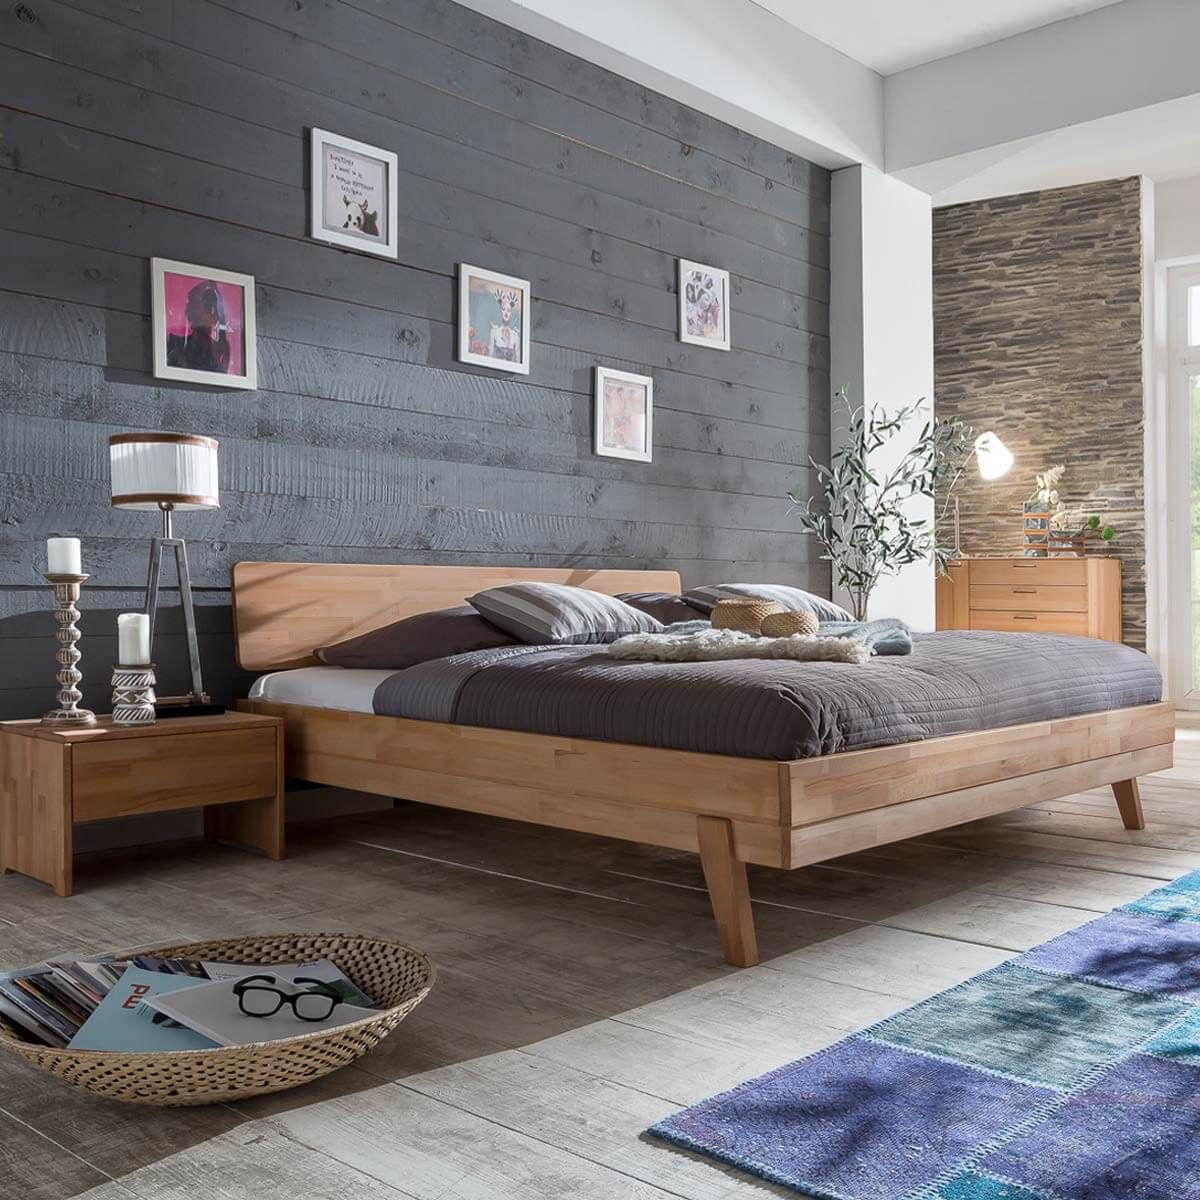 bett eidsberg 140x200 in kernbuche massiv ge lt m bel. Black Bedroom Furniture Sets. Home Design Ideas